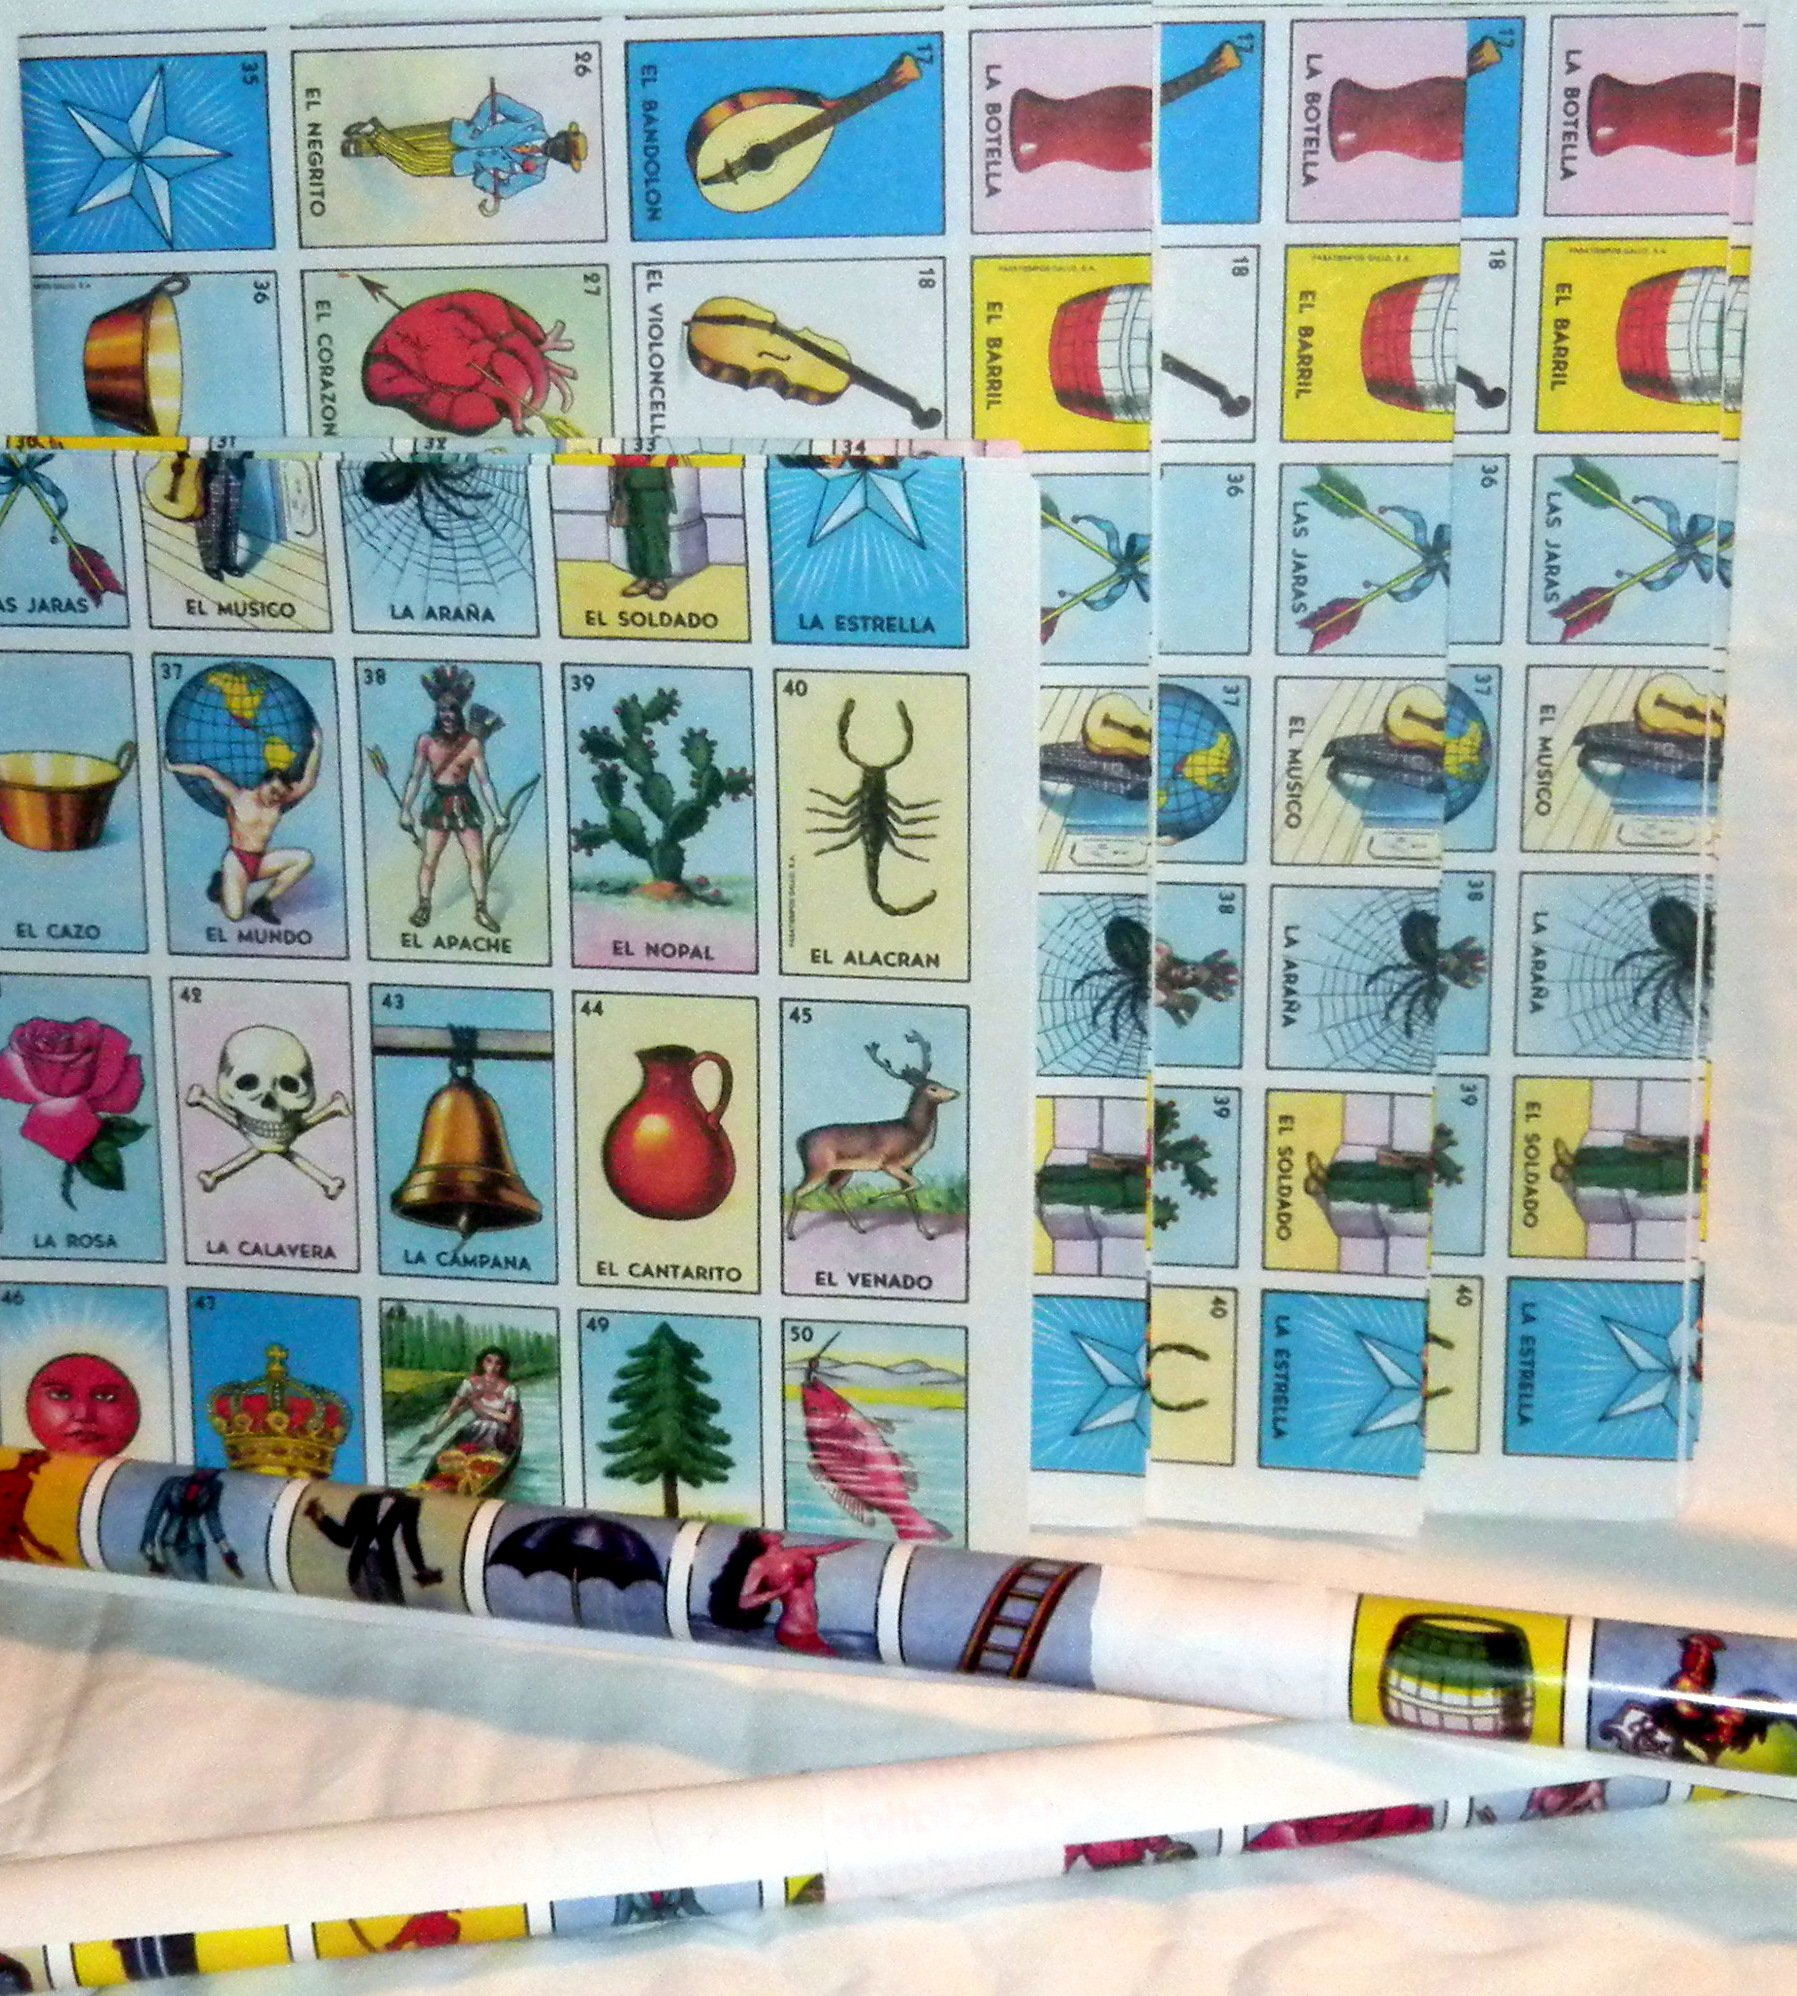 6 X Authentic Mexican Loteria Bingo Chalupa Game: Poster Rolls New